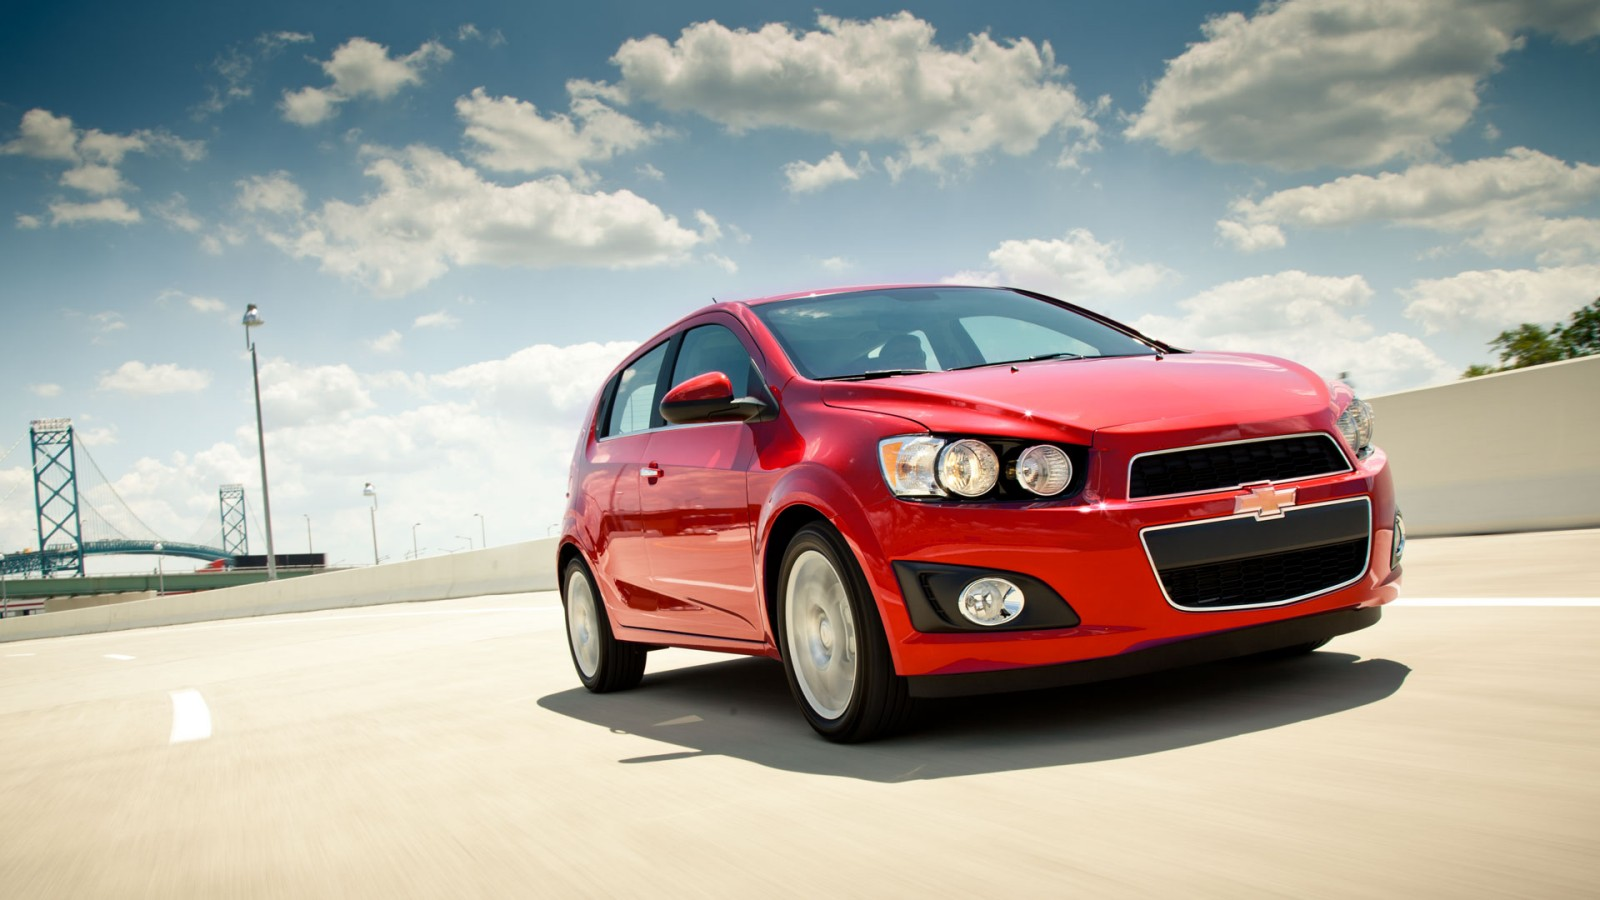 Certified Pre-Owned Chevrolet Vehicles for sale near Washington, DC